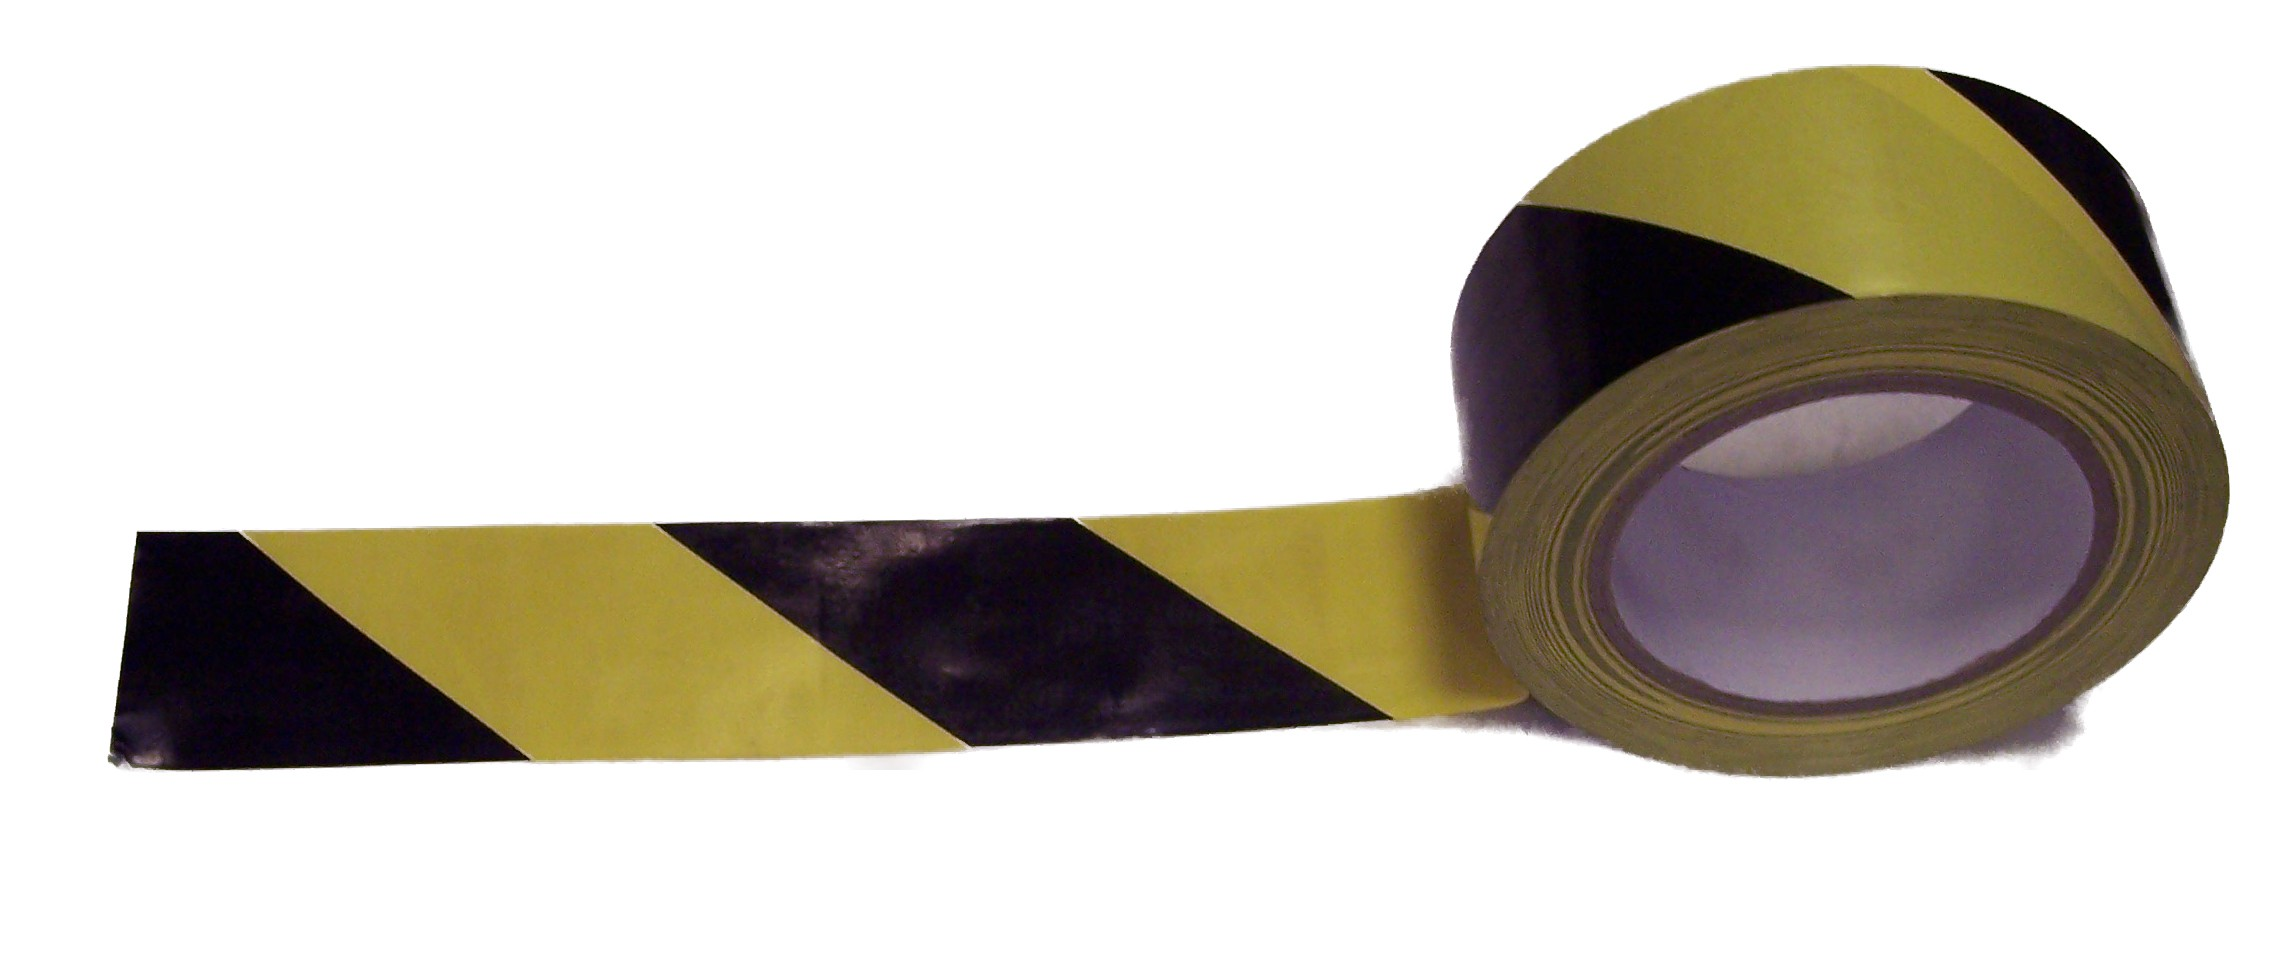 Specialised Tape ValueX Lane Marking Tape 50mmx33m Black/Yellow